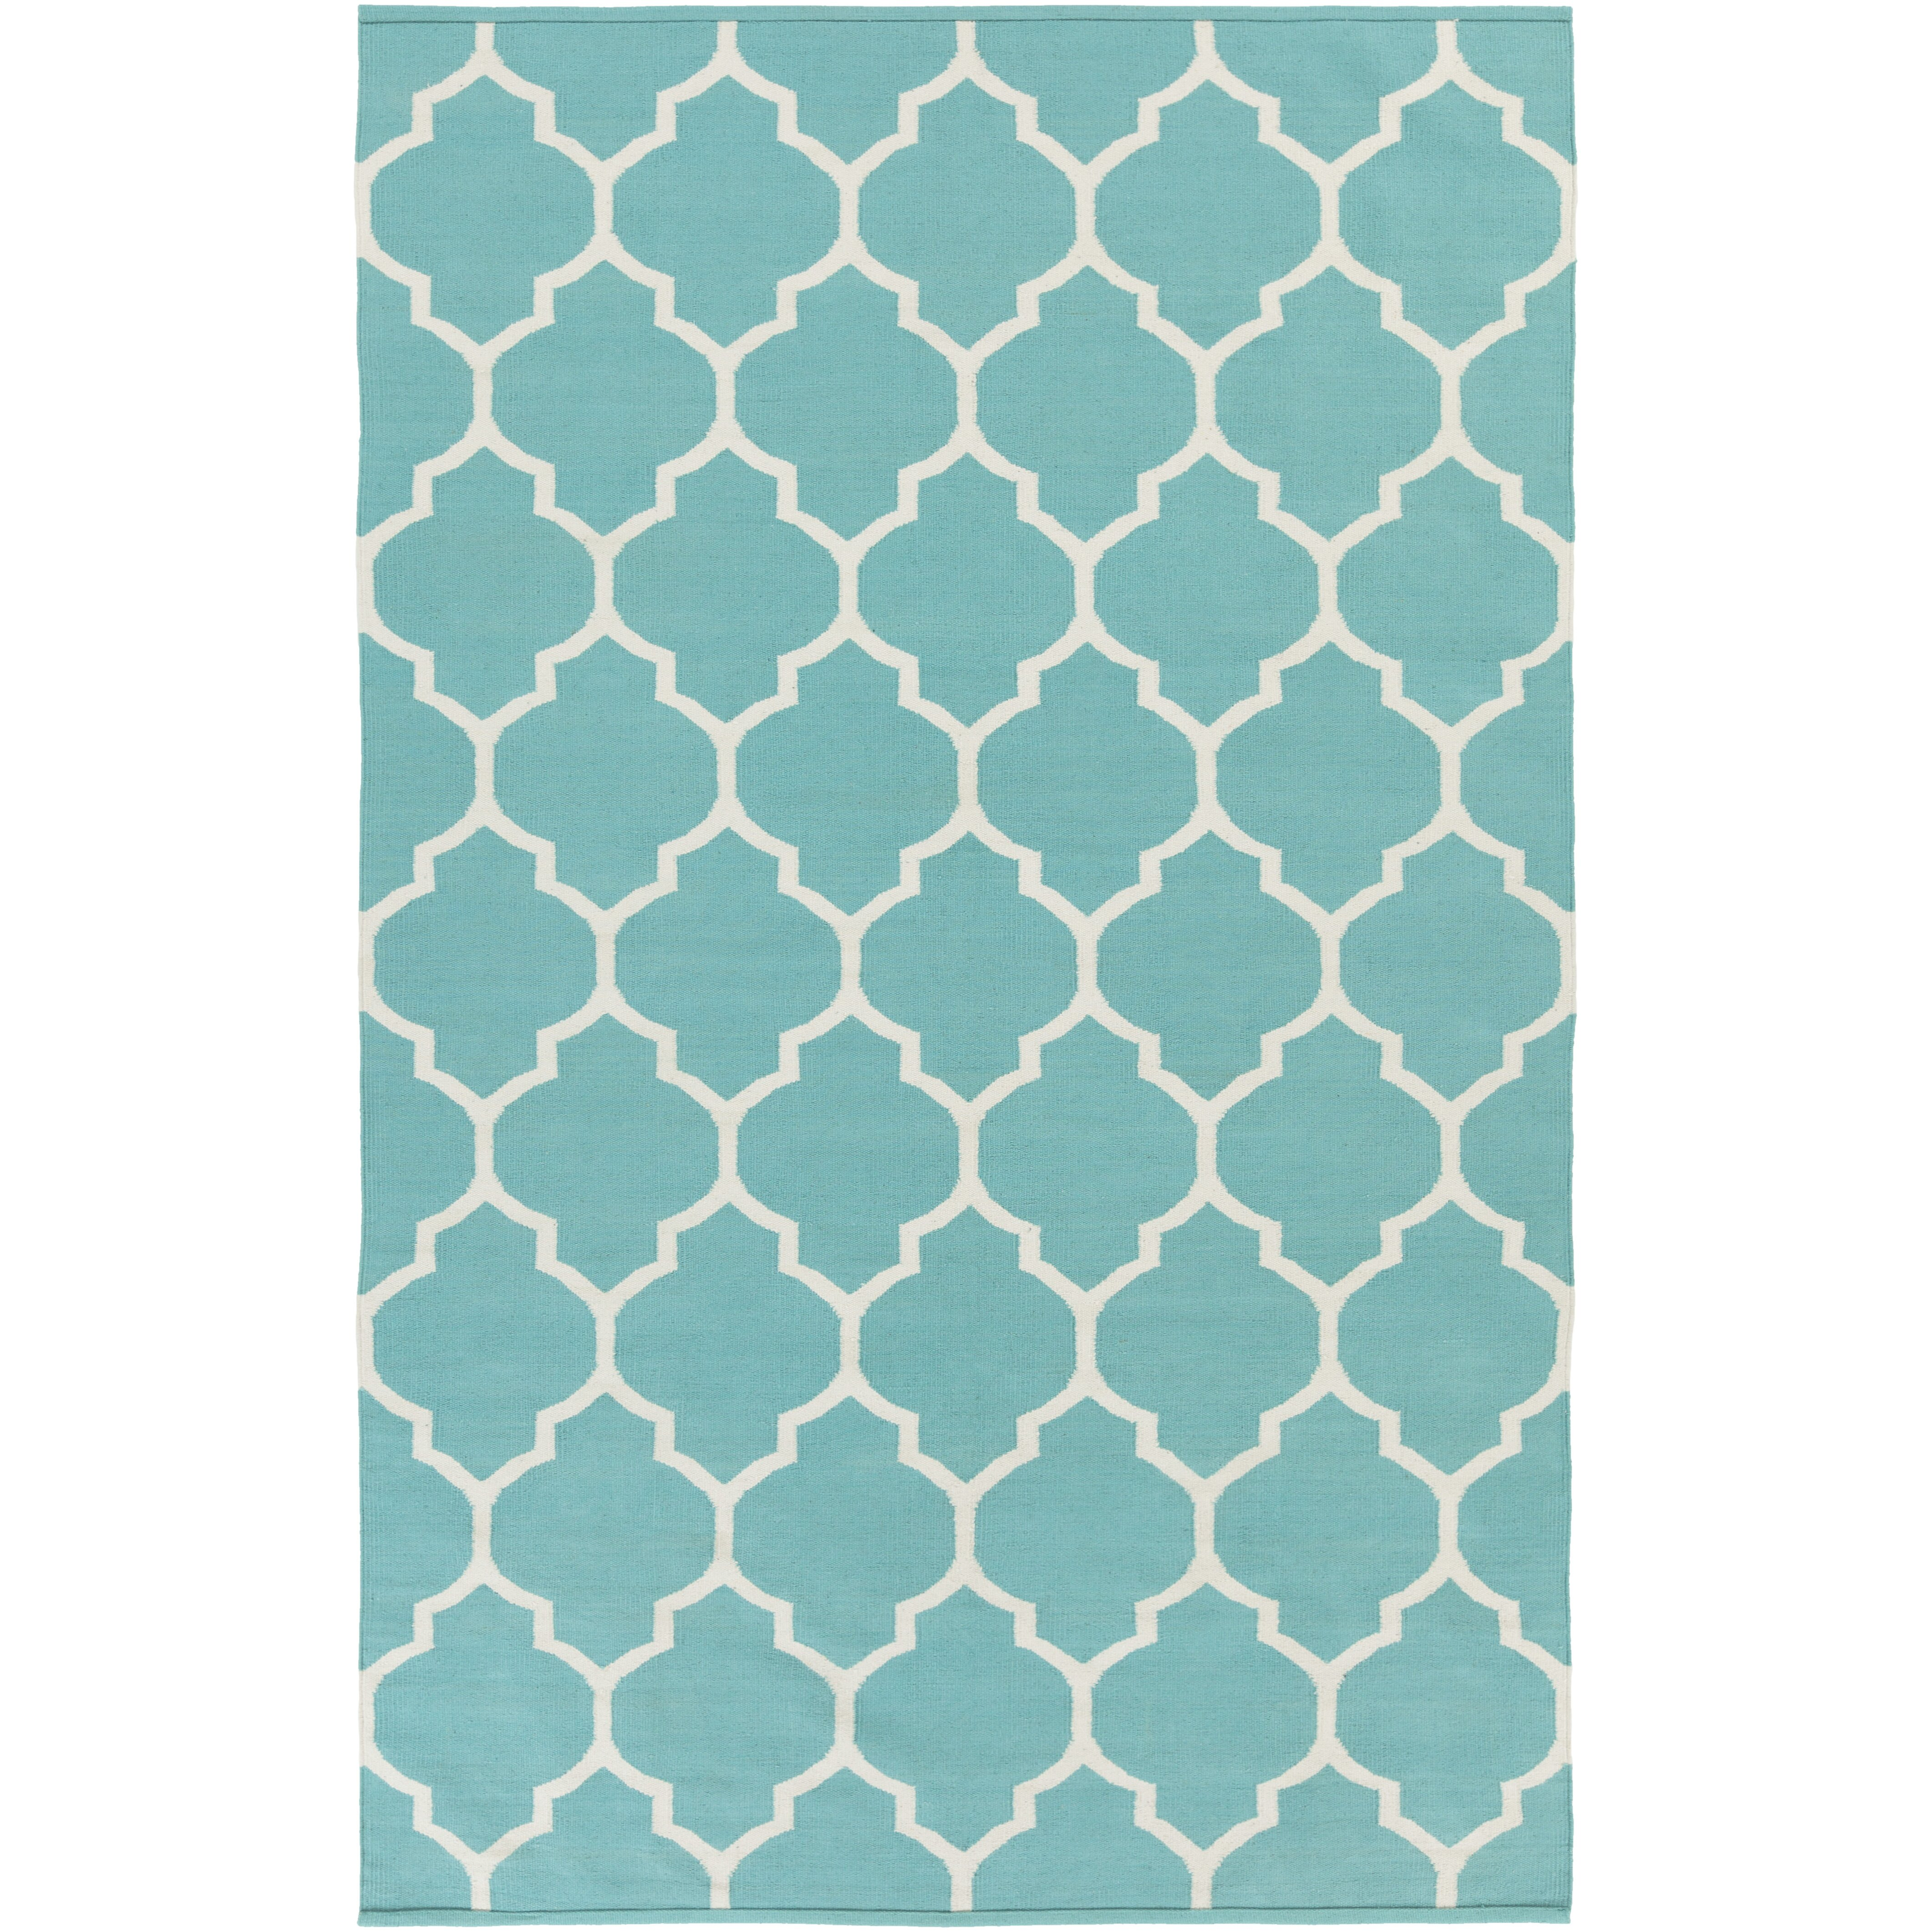 Artistic Weavers Vogue Teal Geometric Claire Area Rug